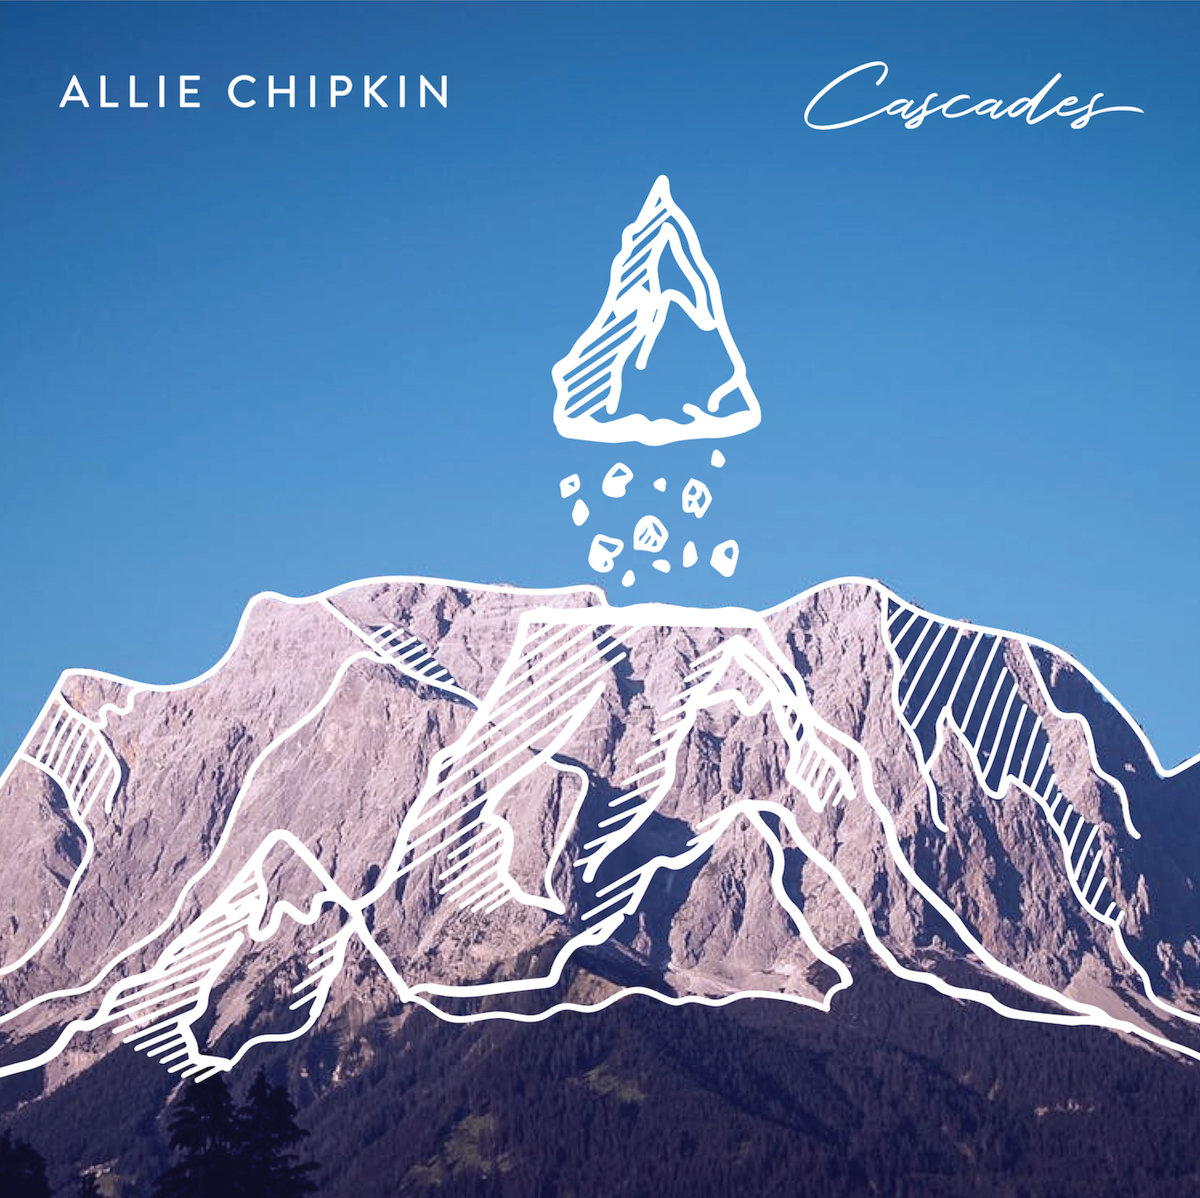 Allie Chipkin – cascades (2018) - Produced, Engineered & MixedPerformed: Drums & Percussion, Piano, Bass, Guitar